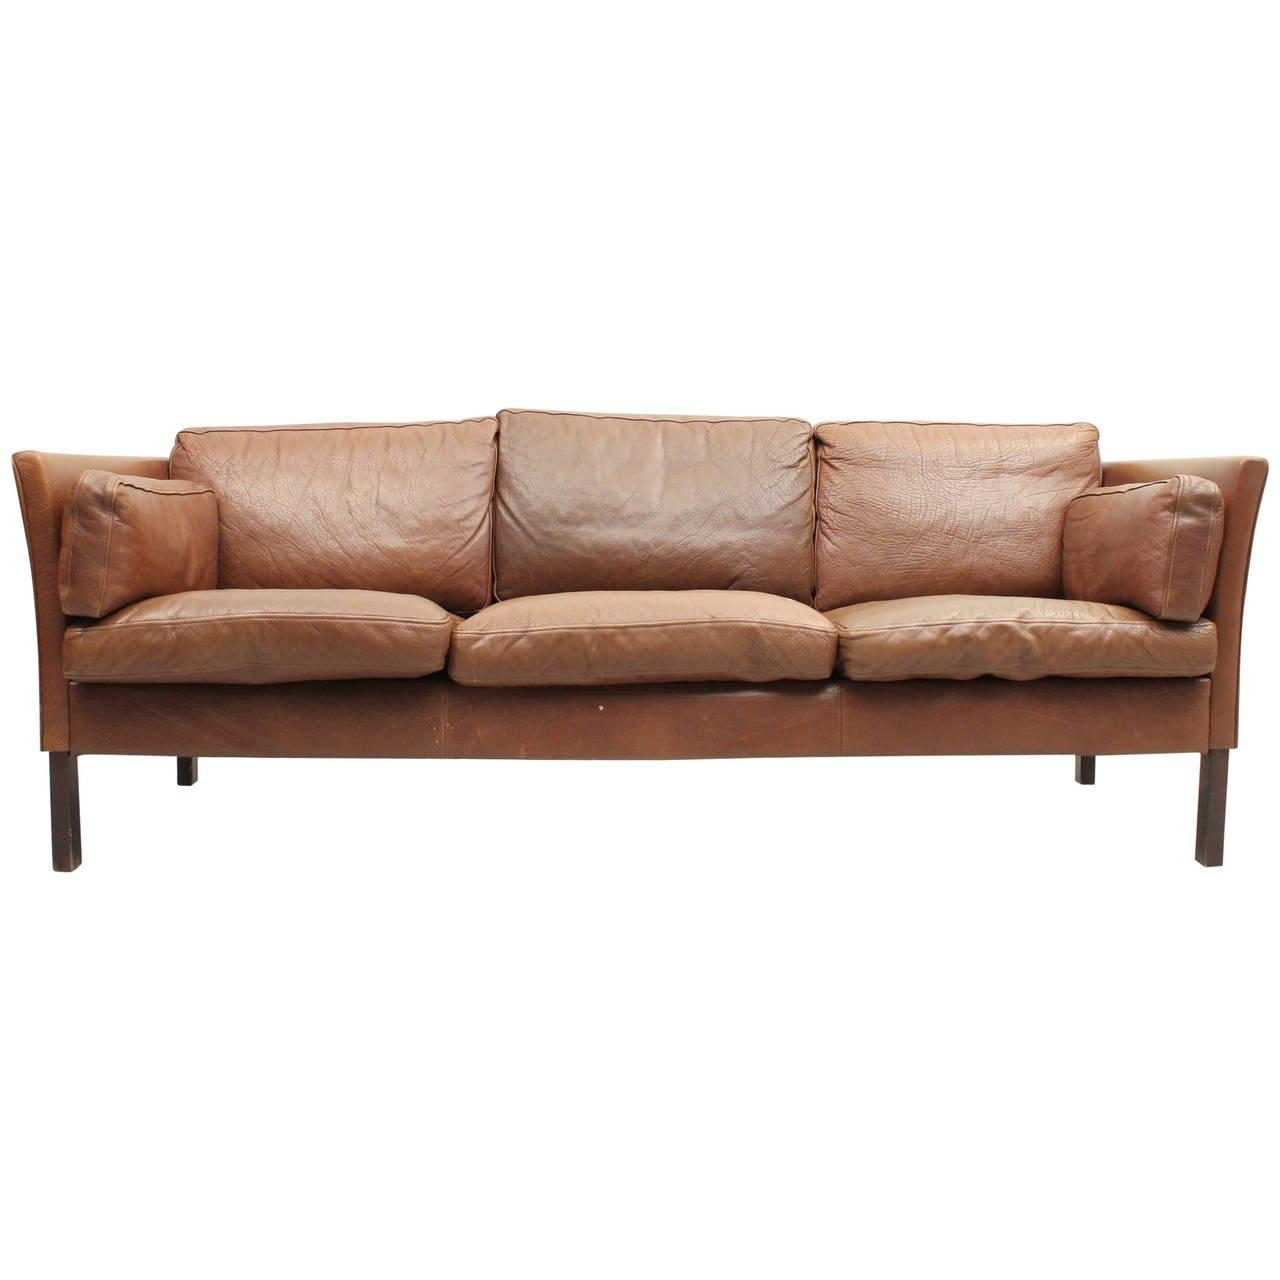 Danish Mid Century Modern Leather Sofa At 1Stdibs Intended For Danish Leather Sofas (Image 13 of 20)